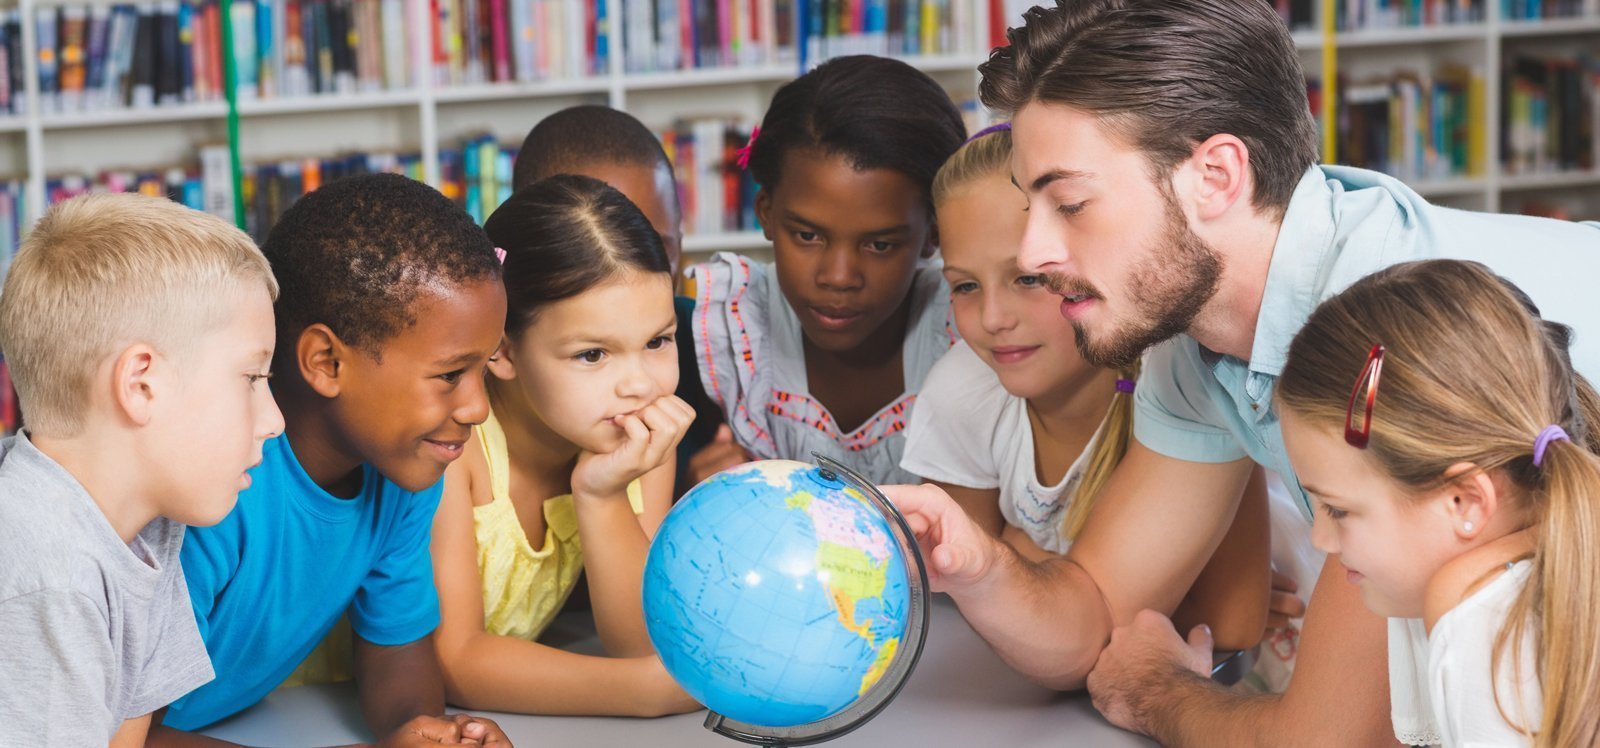 Bearded male teacher and elementary school-age students looking at a globe